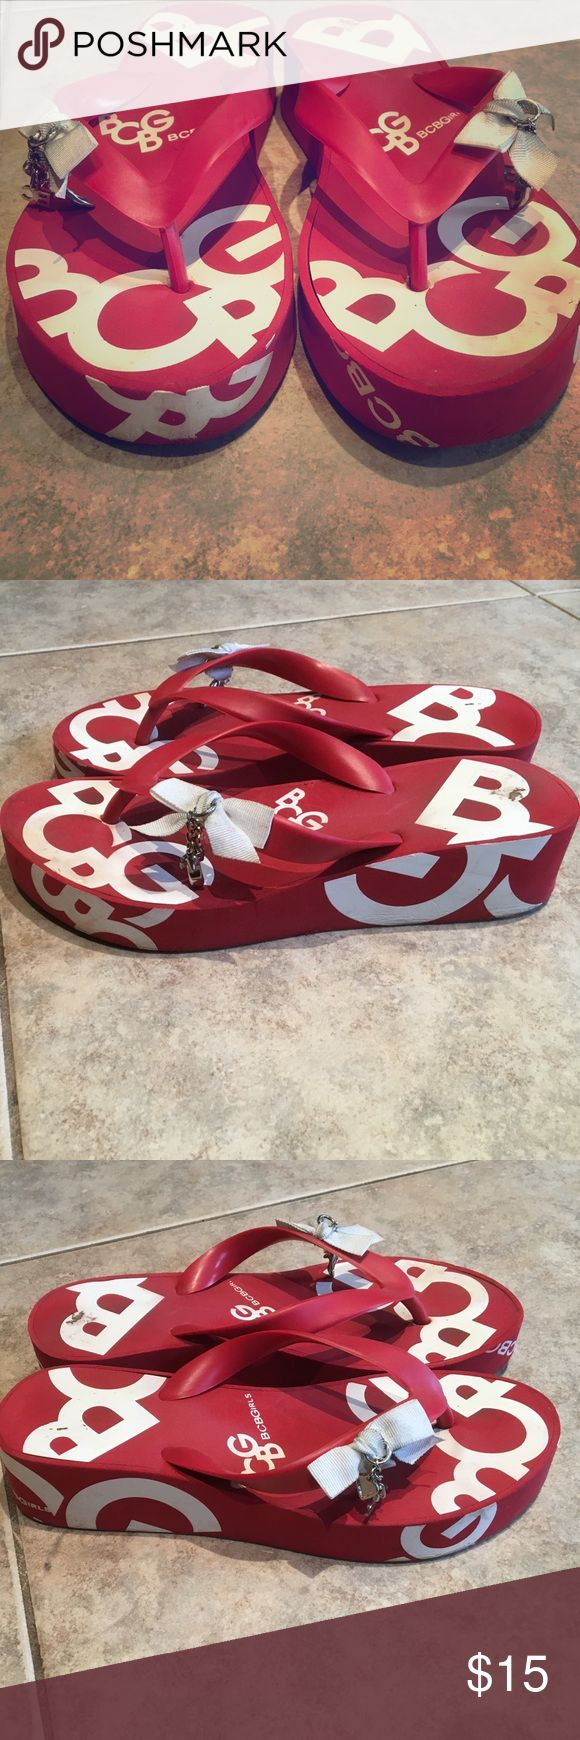 BCBG Girls Red Flip Flop With Dangle Jewelry Adorable BCBG Girls red flip flop with white letters and silver jewelry dangling from the bows. Size 7.5. Very comfortable! Shows some sign of wear. Perfect poolside shoes! BCBGirls Shoes Sandals